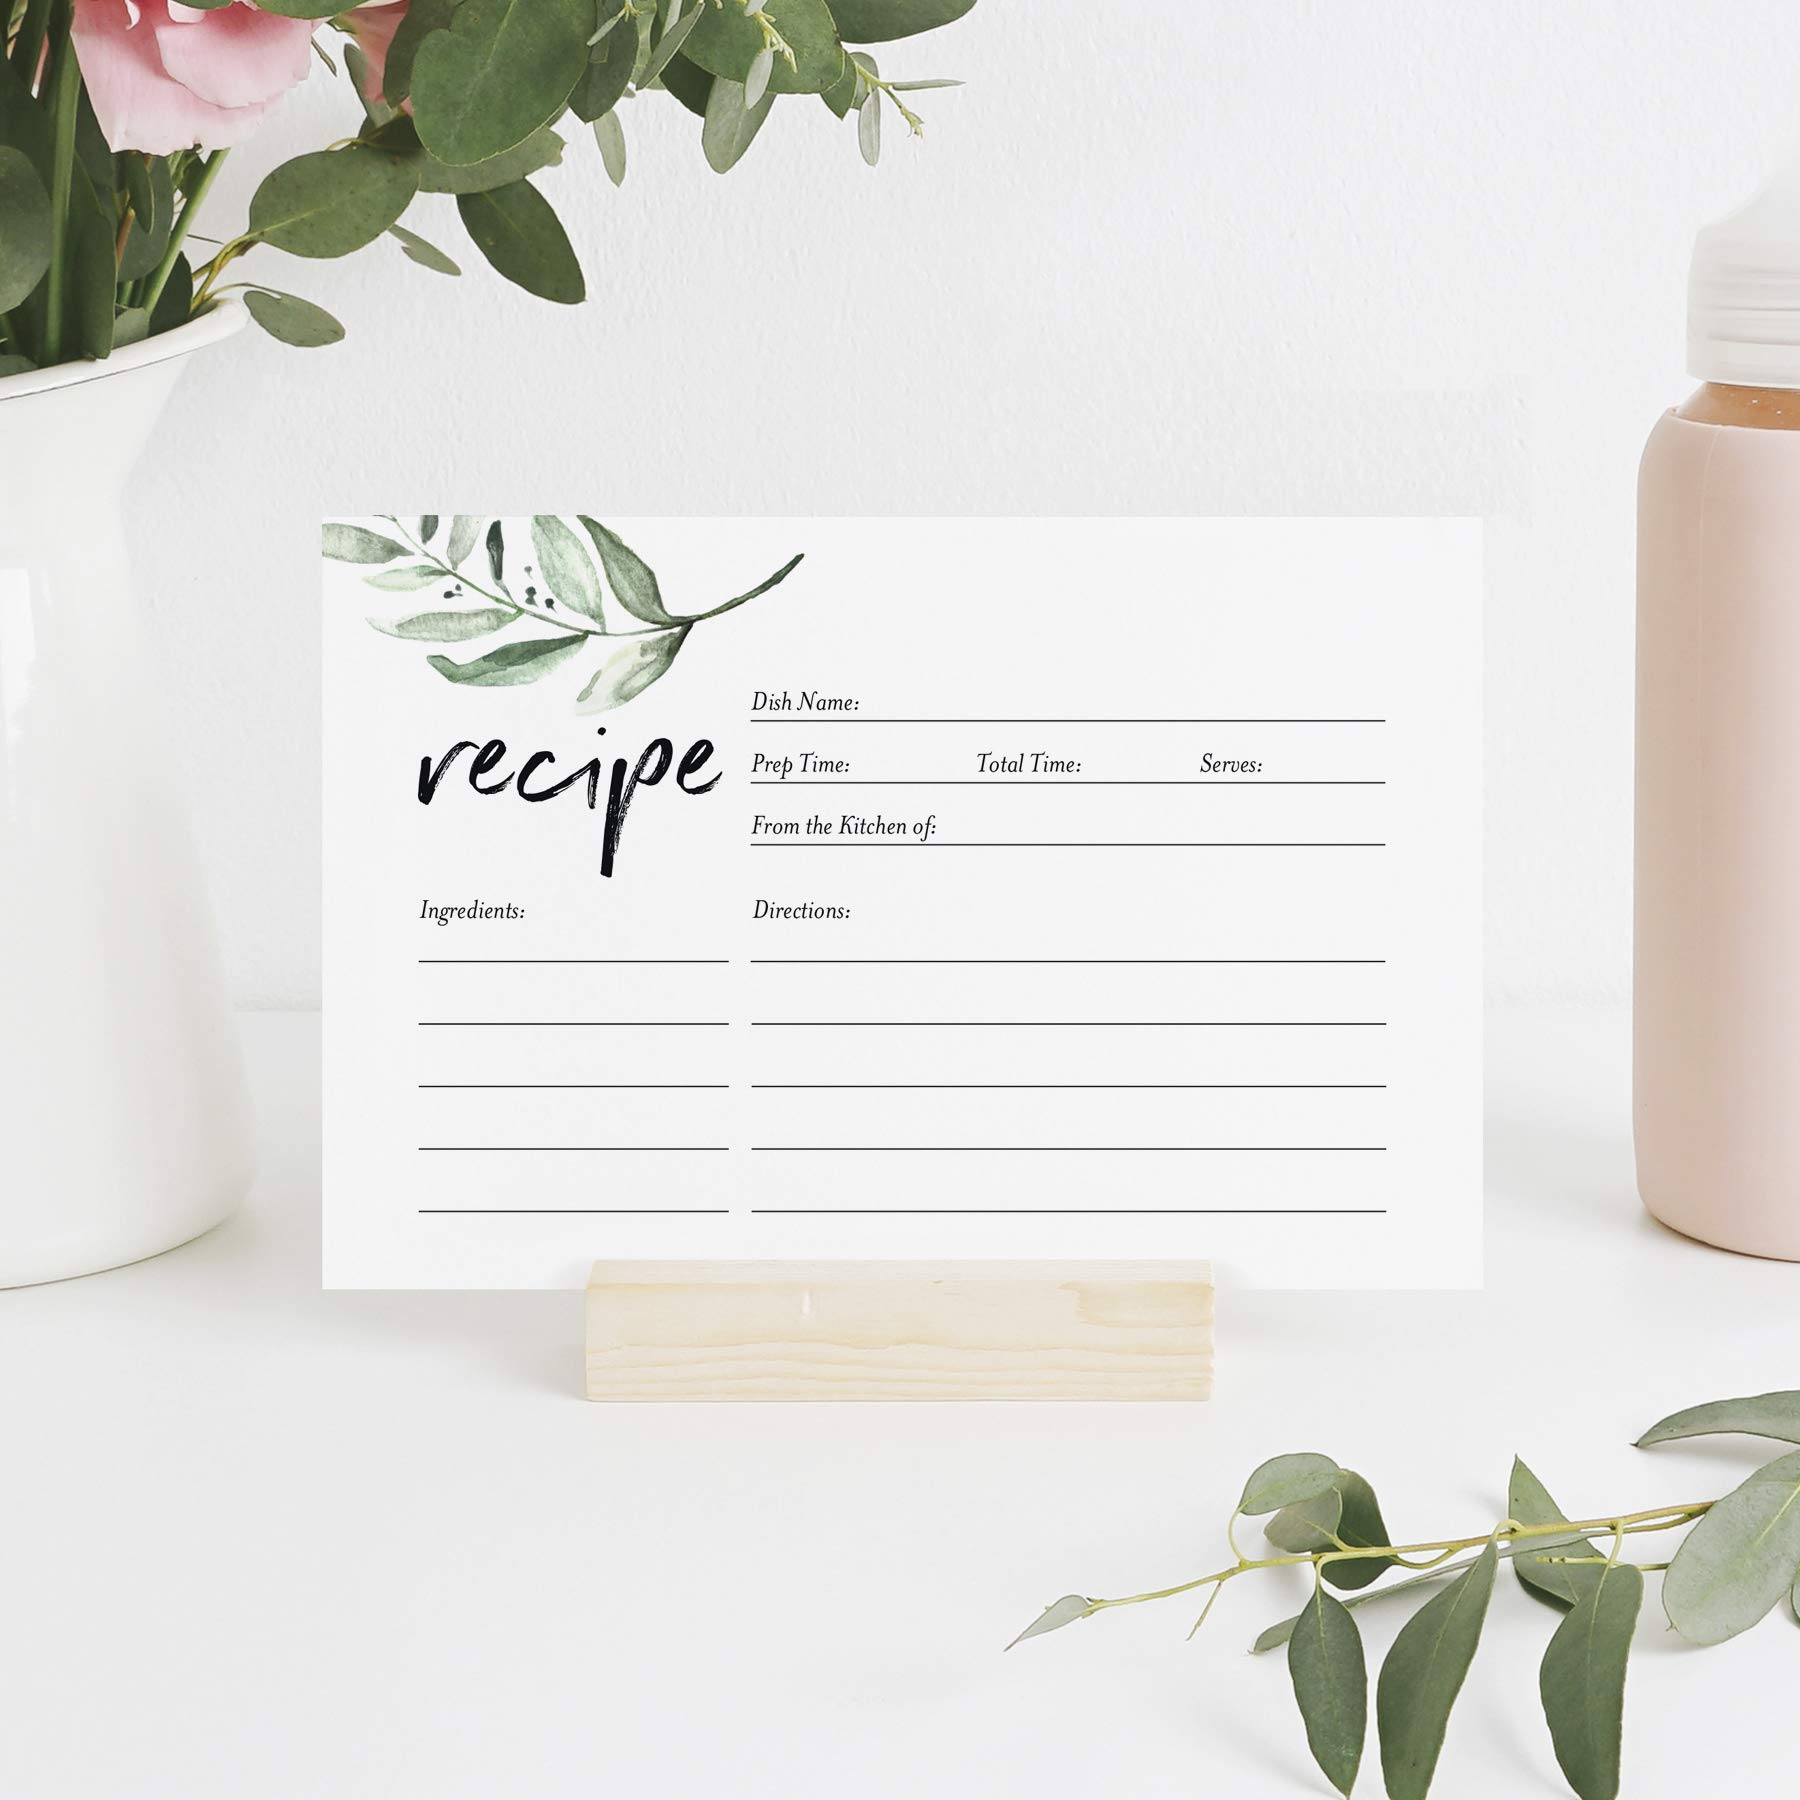 Rustic Recipe Cards 4x6 Double Sided — Greenery design for Bridal Shower, Wedding Shower, Housewarming Gift! (Pack of 50)